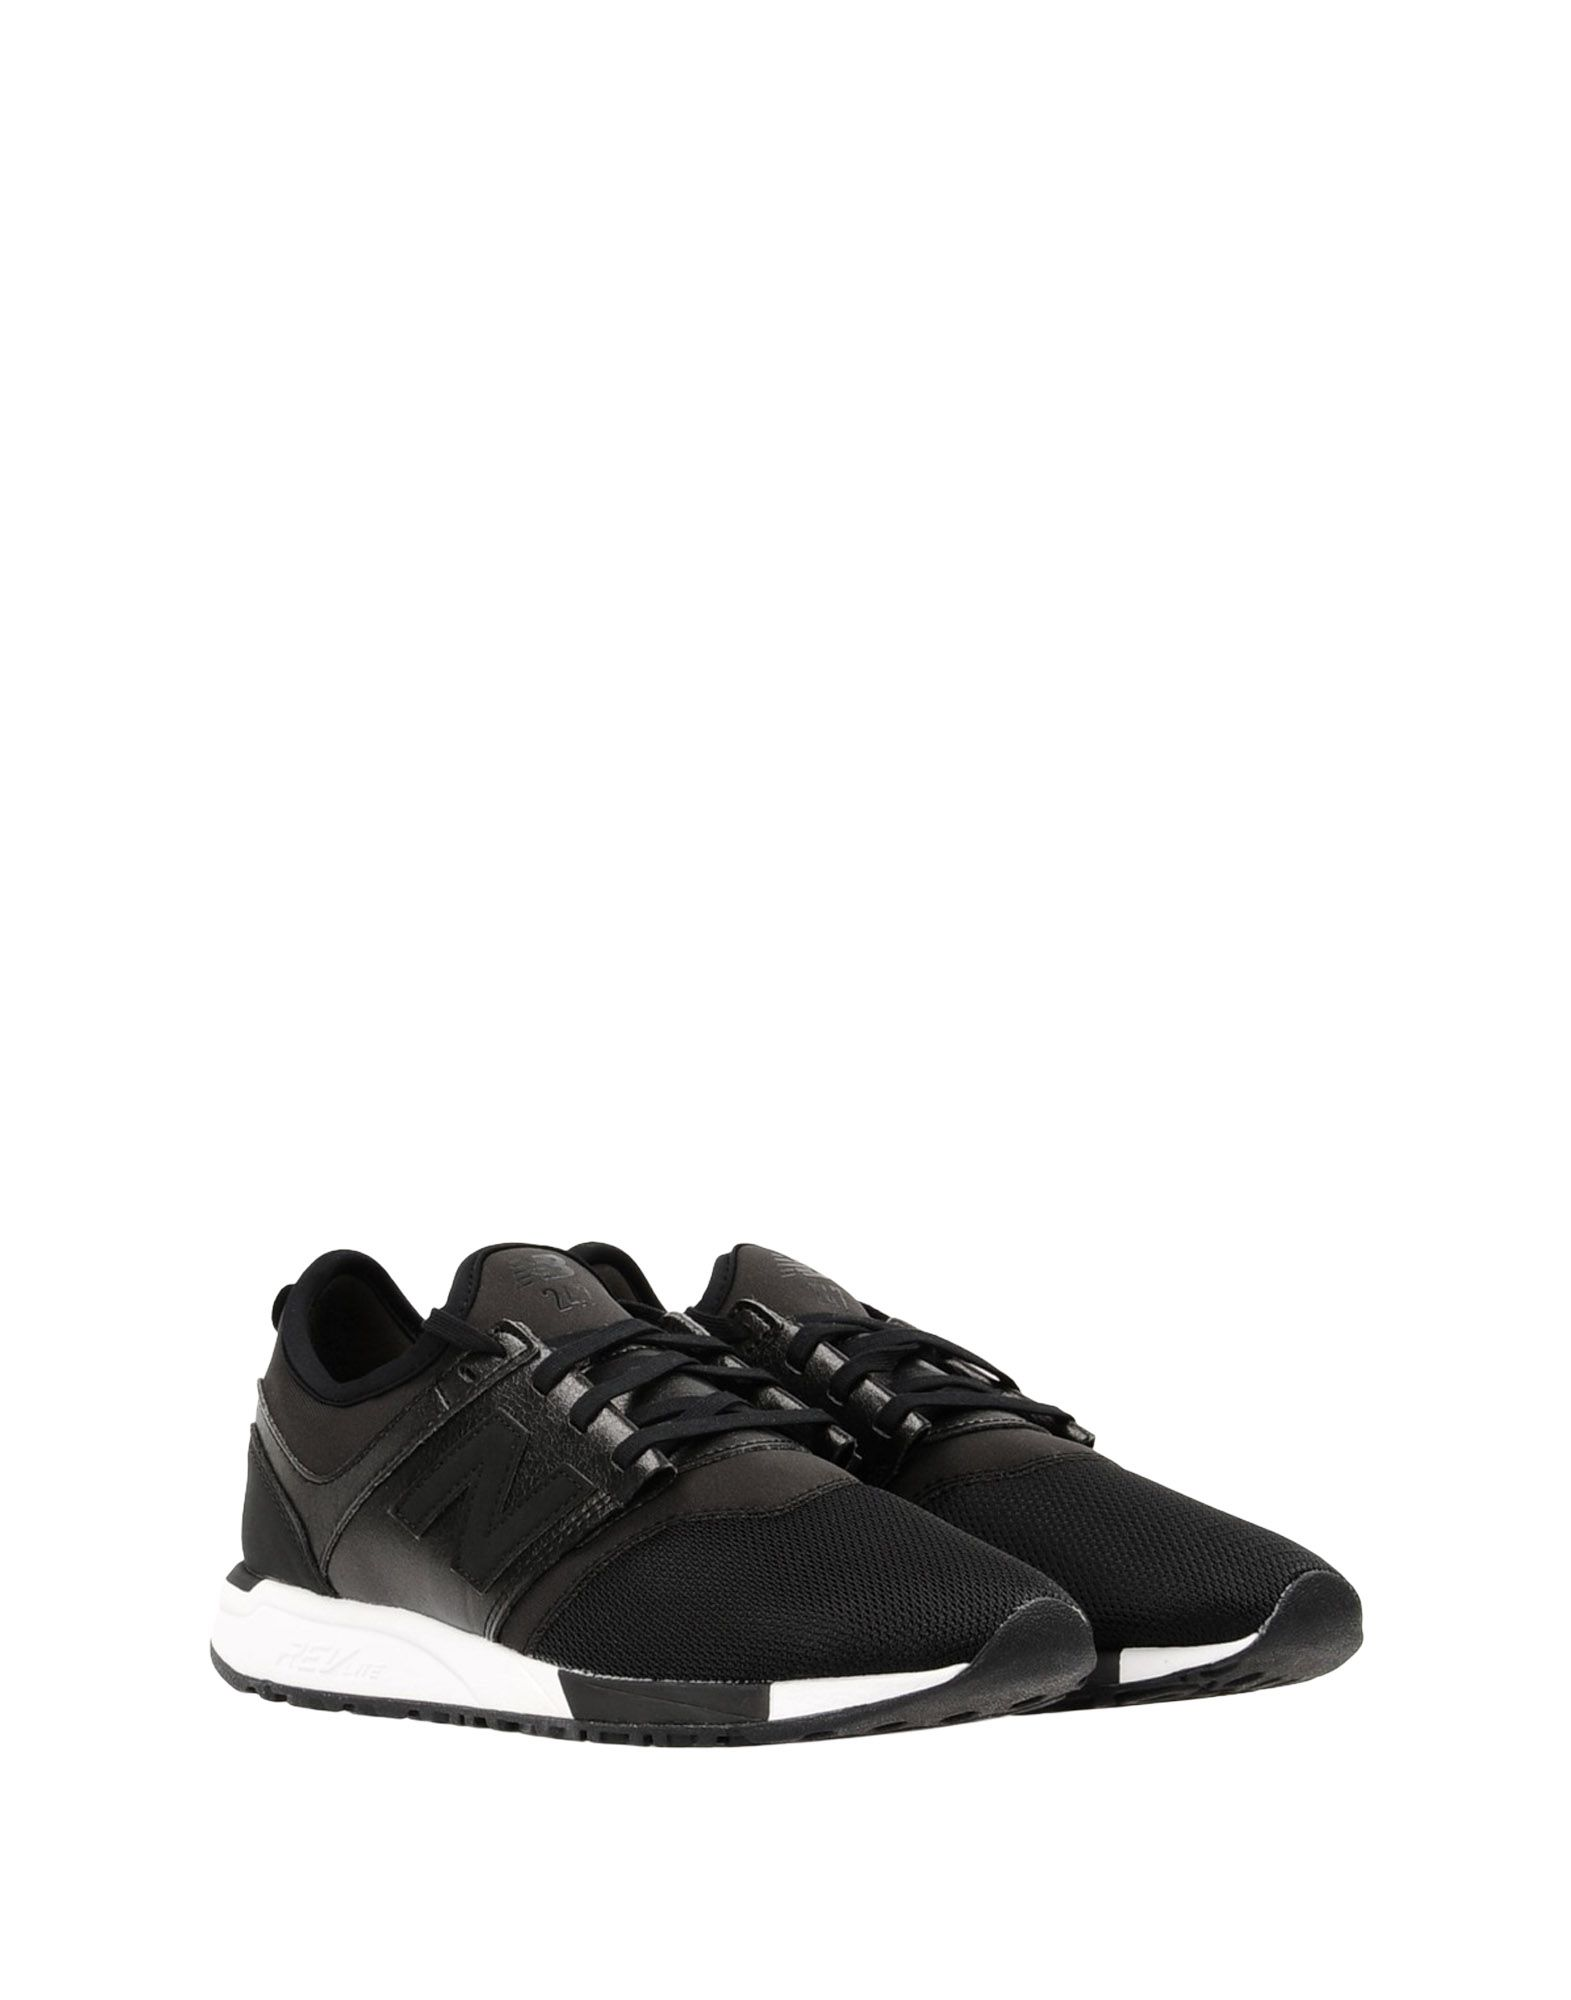 Sneakers New Balance 247 Synthetic - Femme - Sneakers New Balance sur